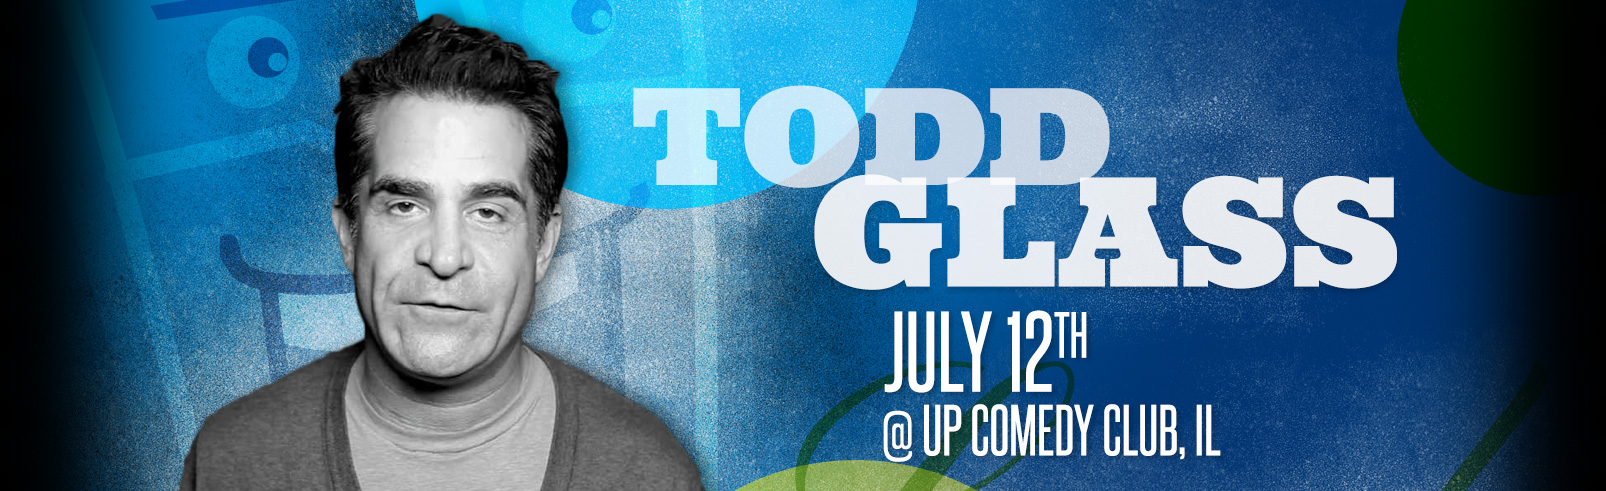 Todd Glass @ UP Comedy Club